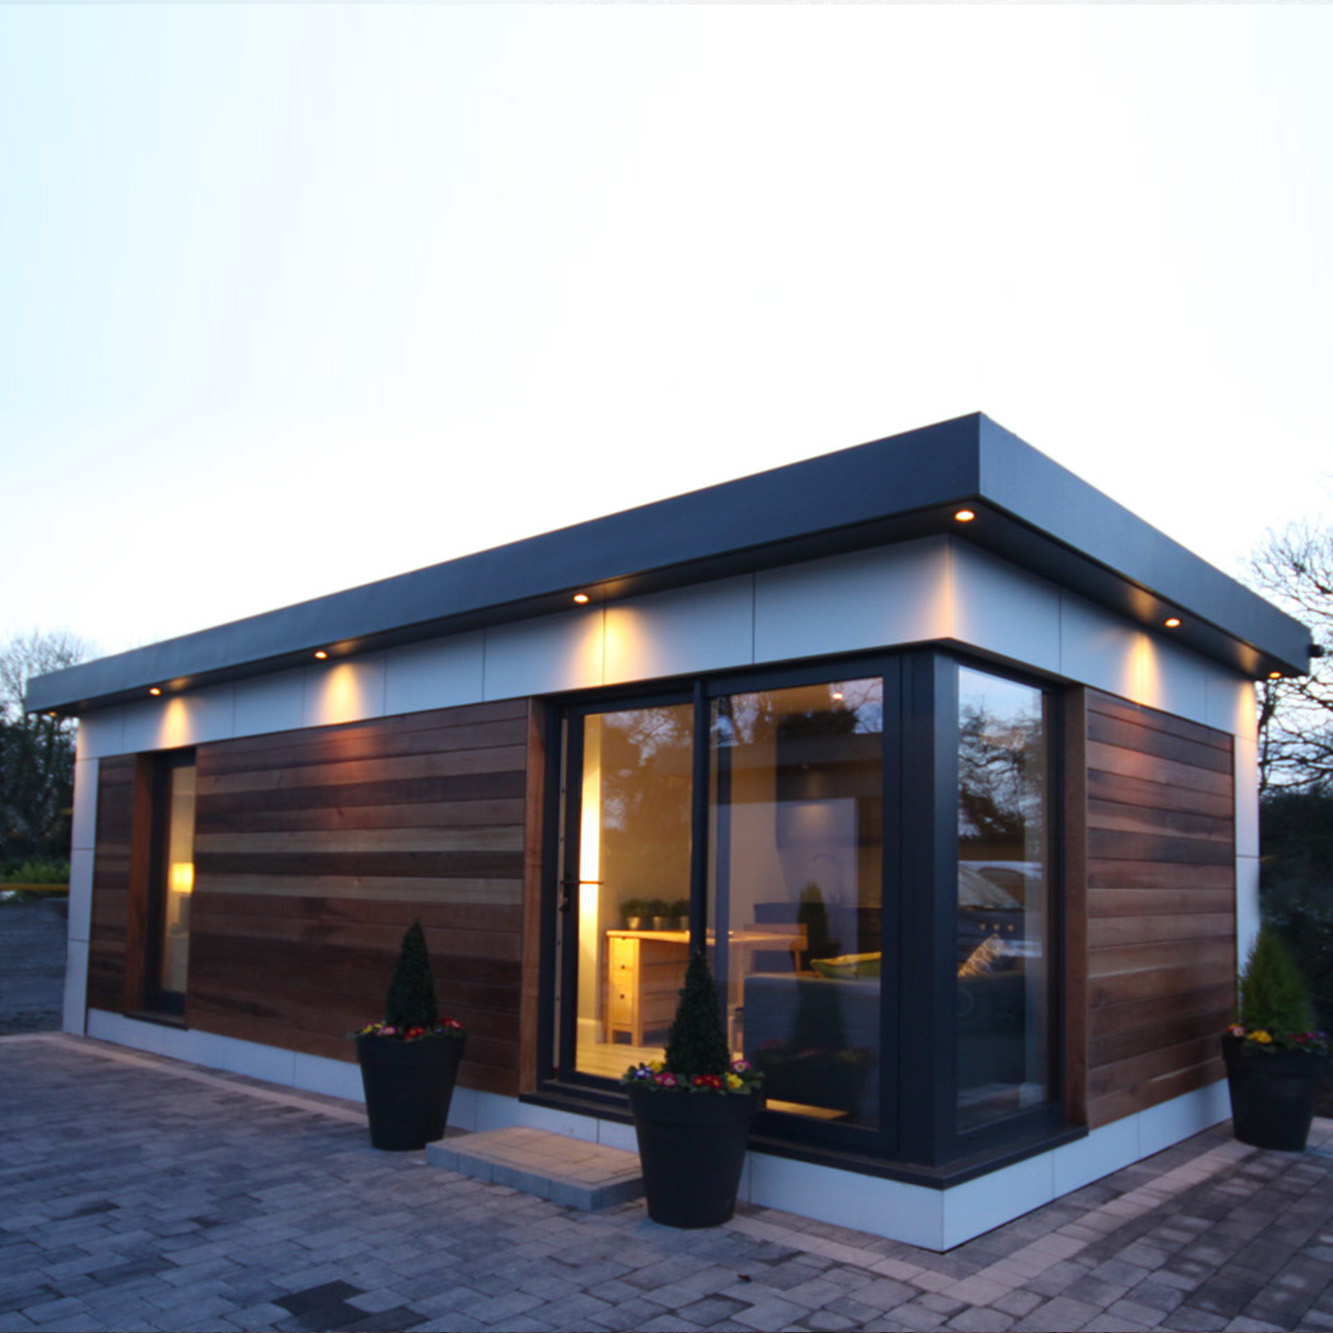 Villa For Sale >> Light Weight Steel Prefabricated Container House Villa For Sale Buy Prefabricated Residential Houses Miniature Houses For Sale Prefab Villa